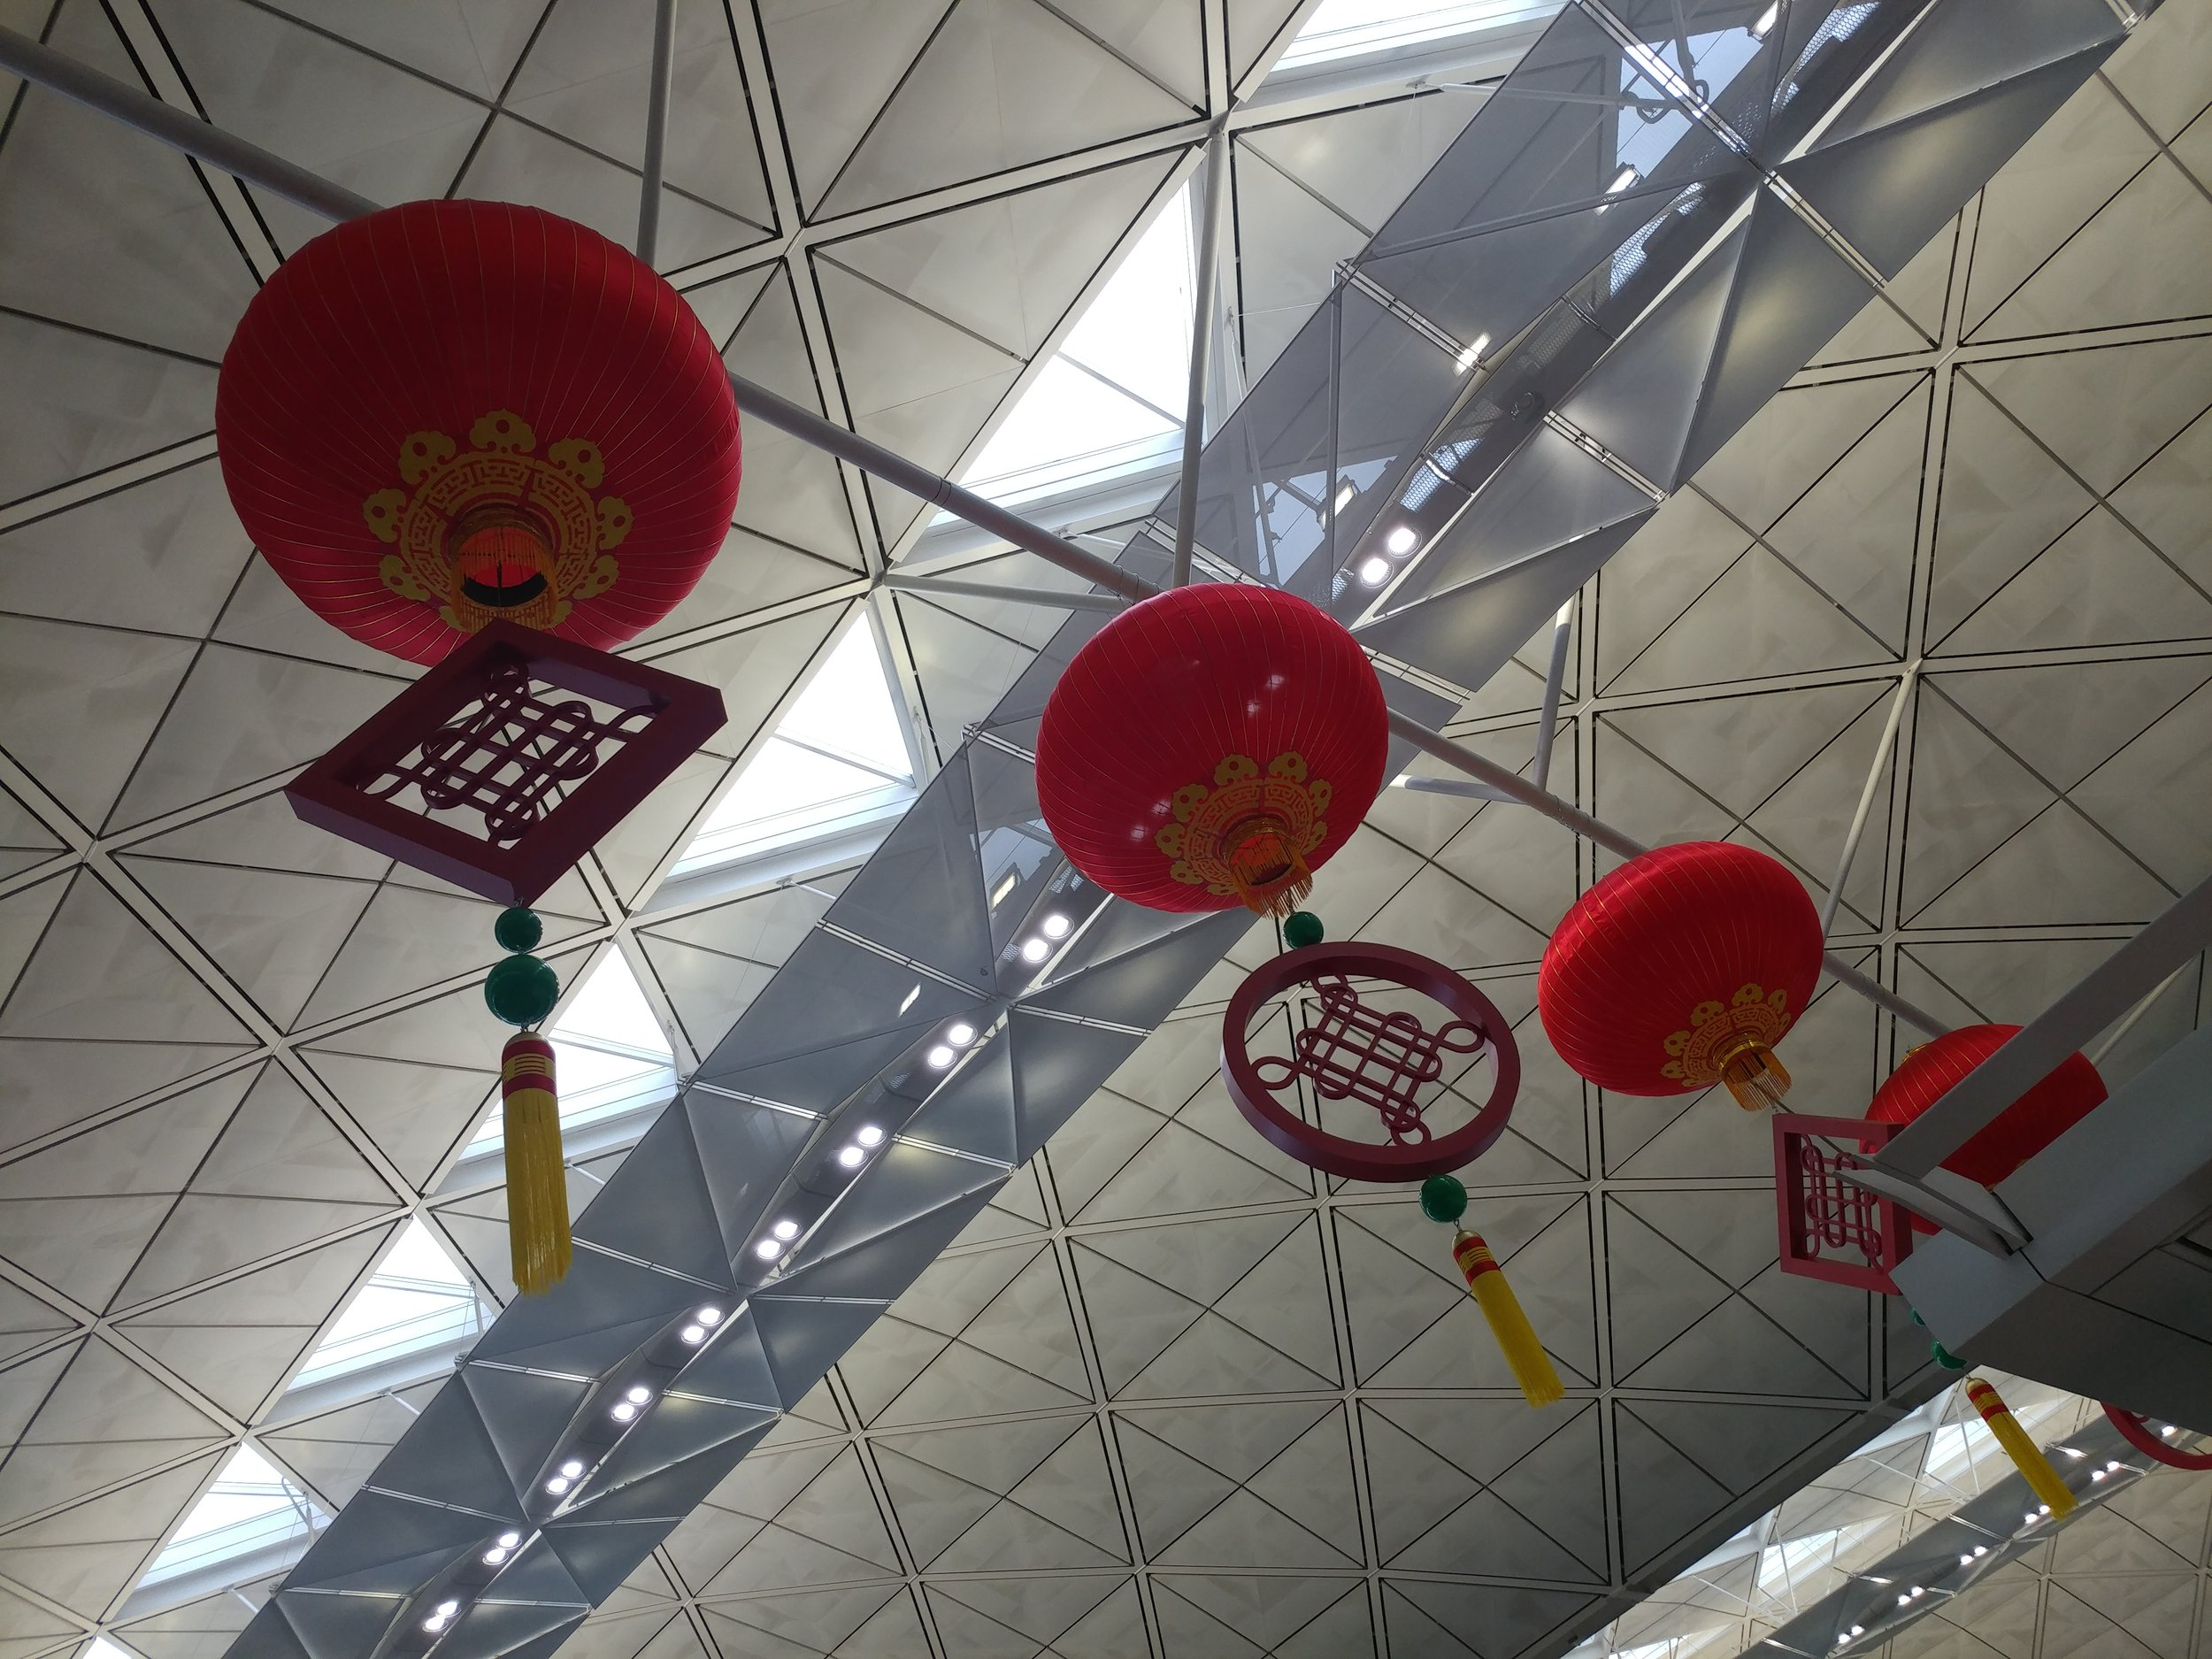 - Chinese lanterns in preparation for Lunar New year festivities at Changi Airport